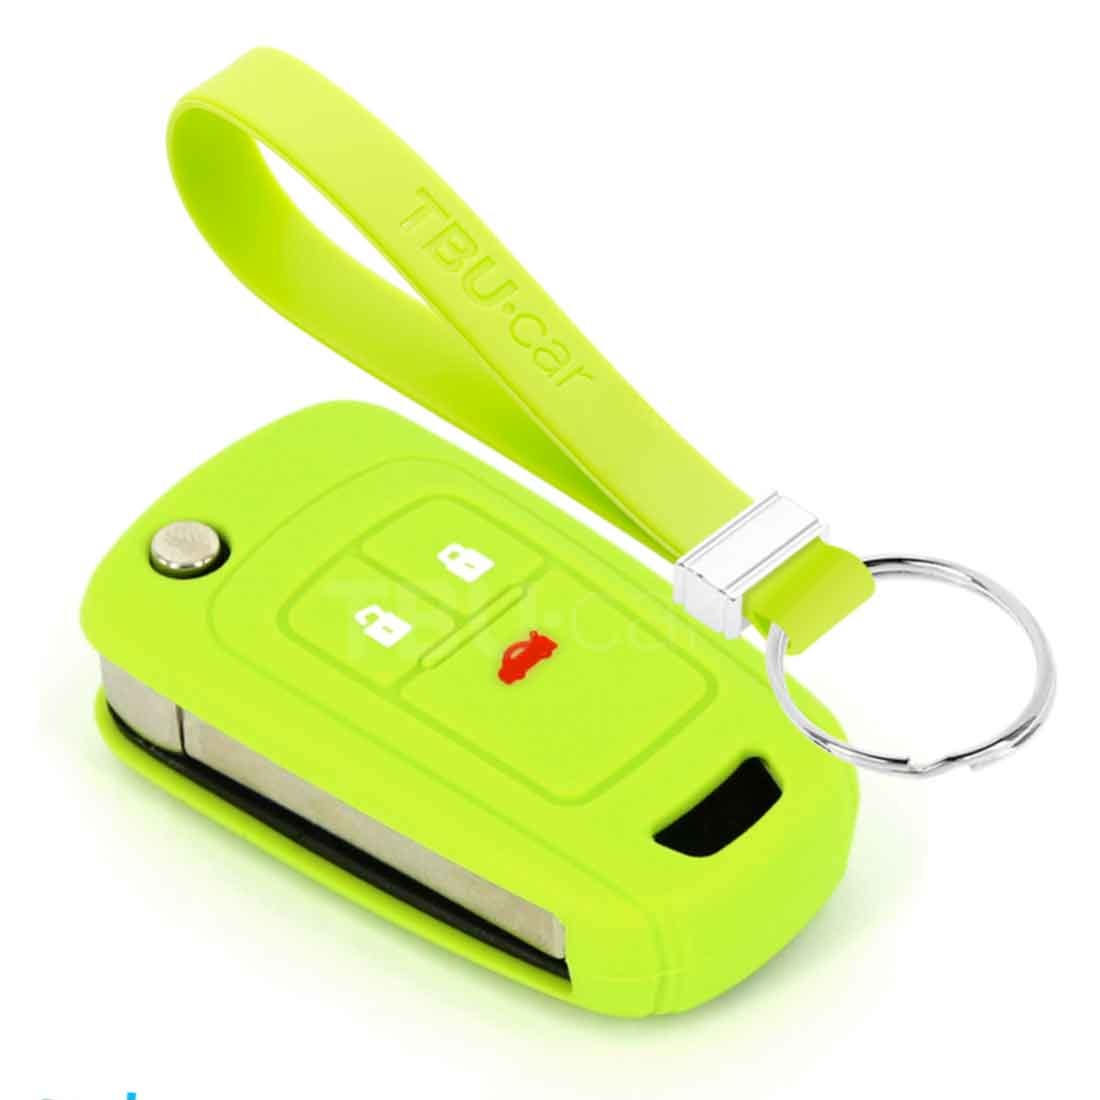 TBU car TBU car Car key cover compatible with Chevrolet - Silicone Protective Remote Key Shell - FOB Case Cover - Lime green